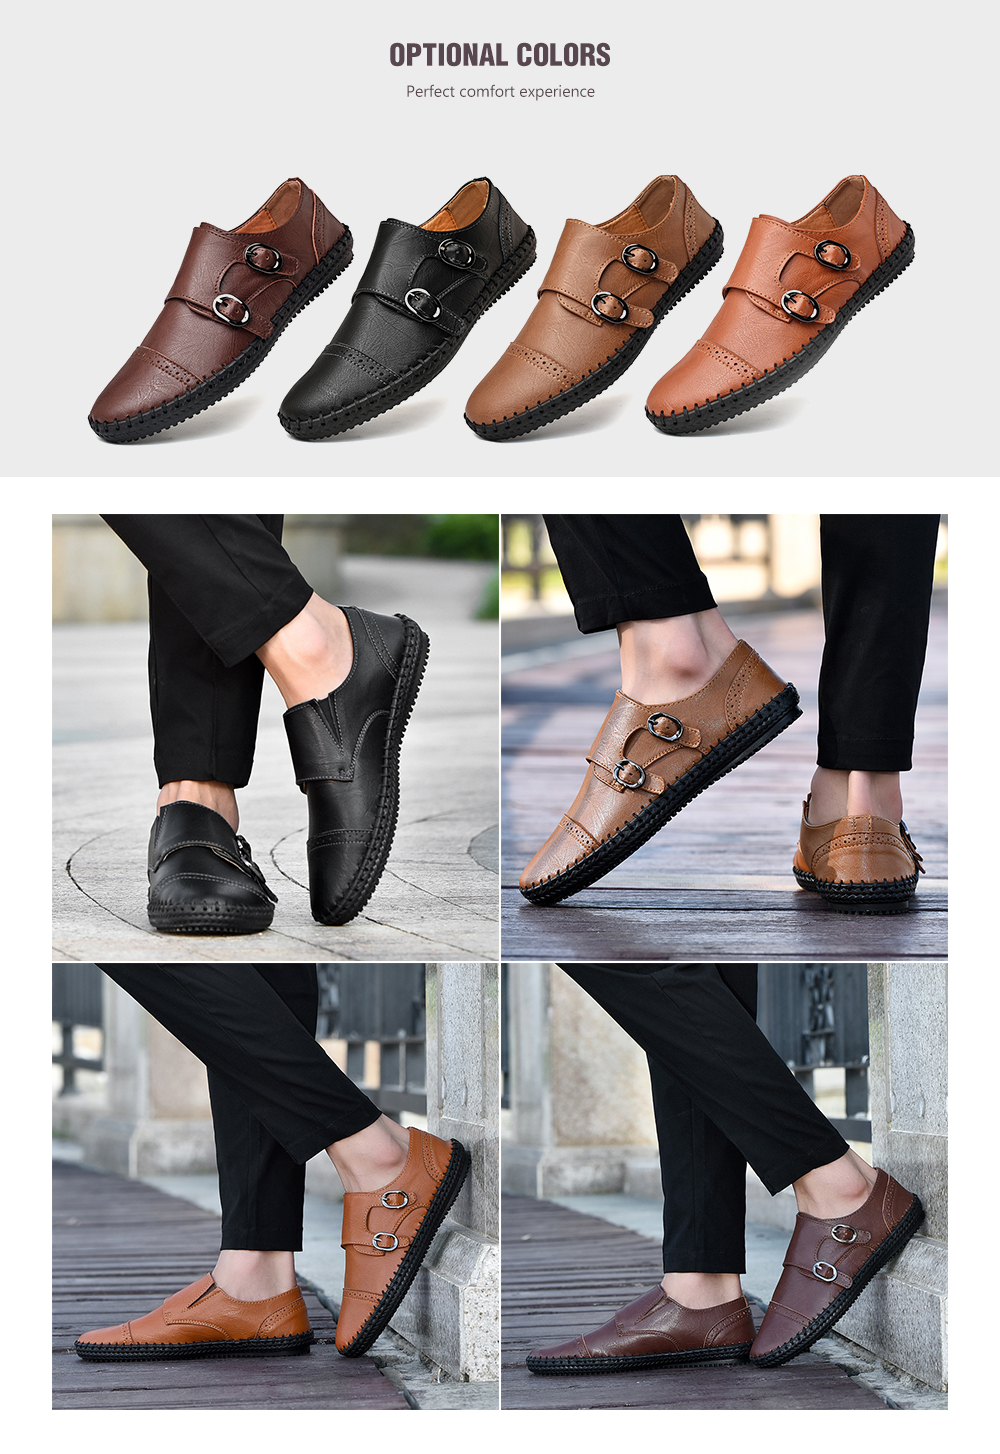 MXL Mens Business Oxford Casual Comfortable Soft Lightweight Simple Formal Shoes Dress Shoes